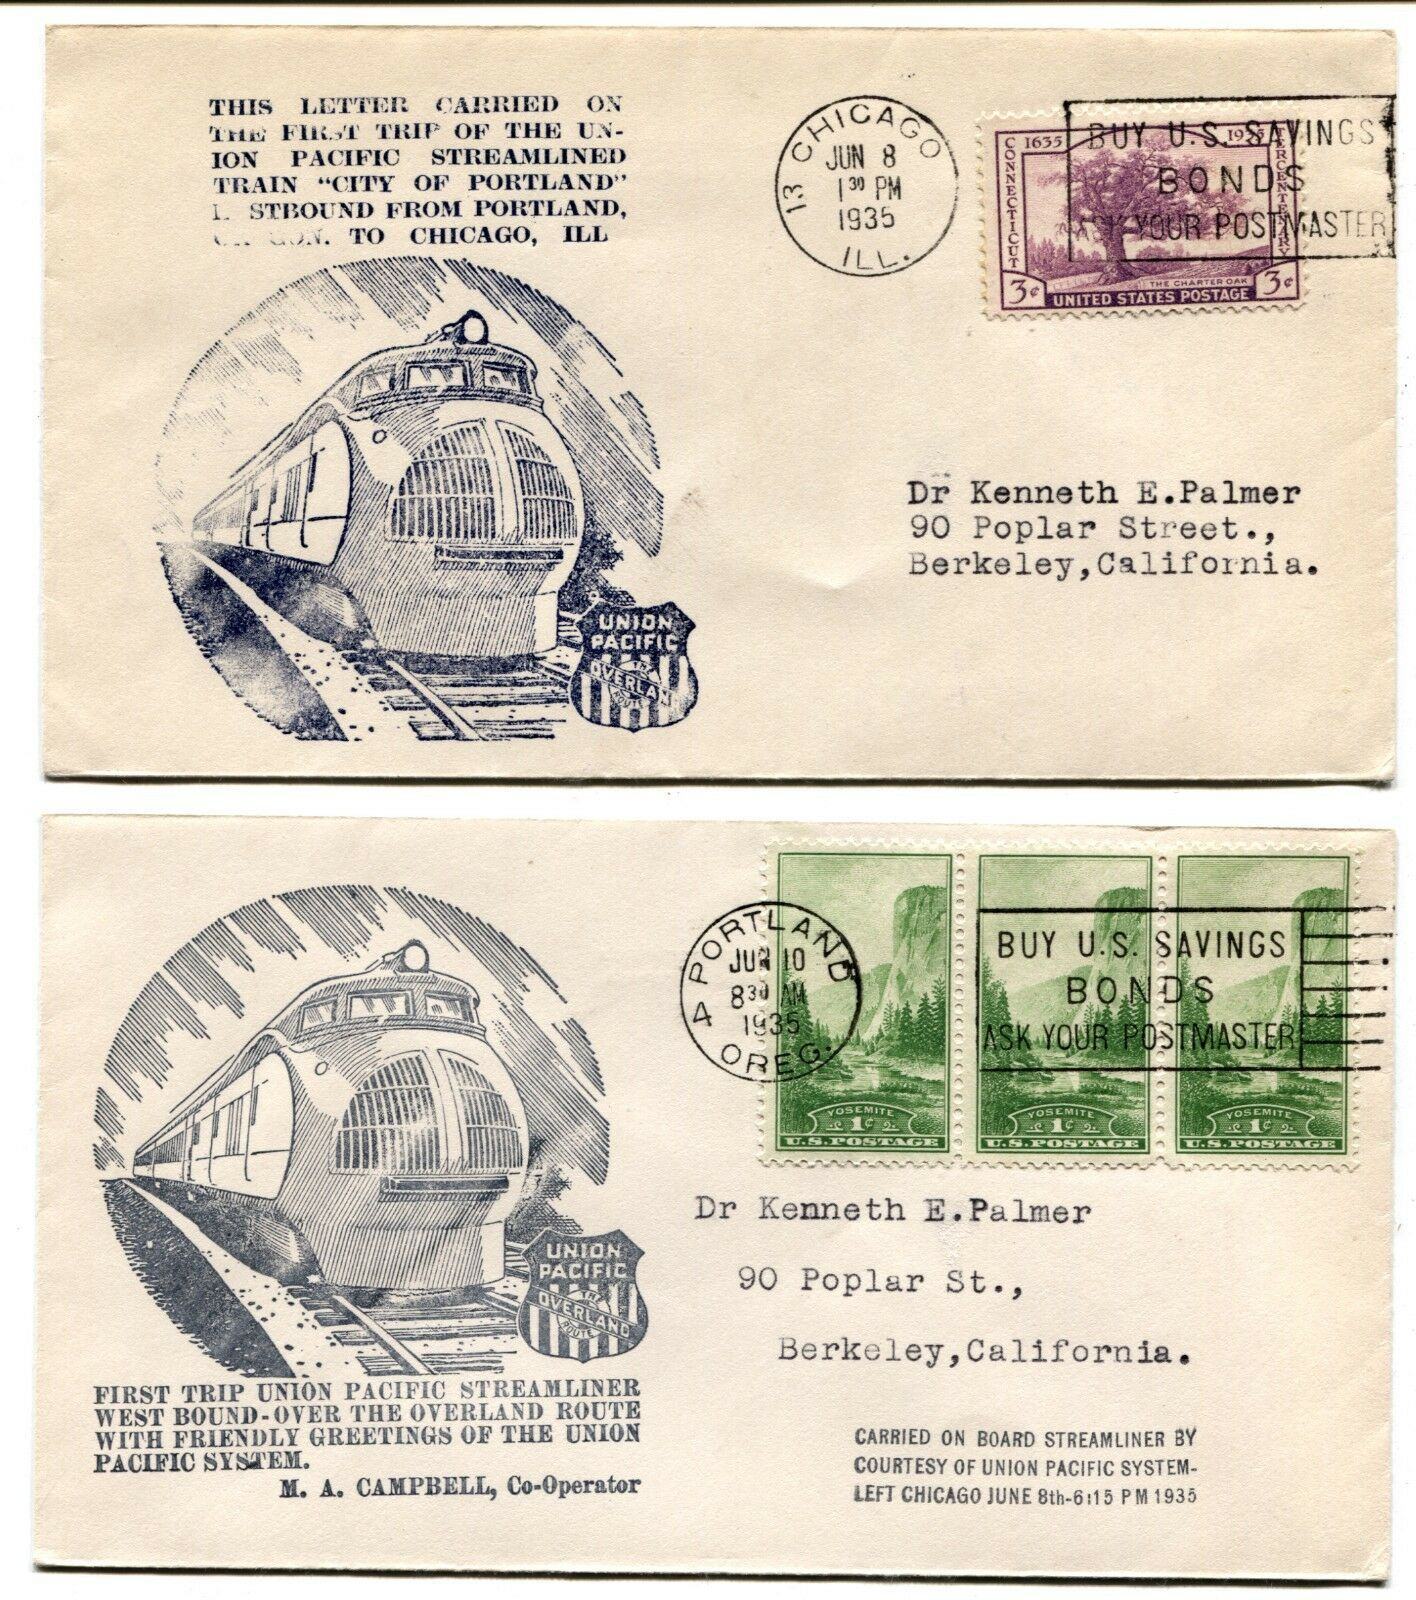 UNION PACIFIC First Day Cancellation Railroad Train Trip Covers Postage 1935 USA